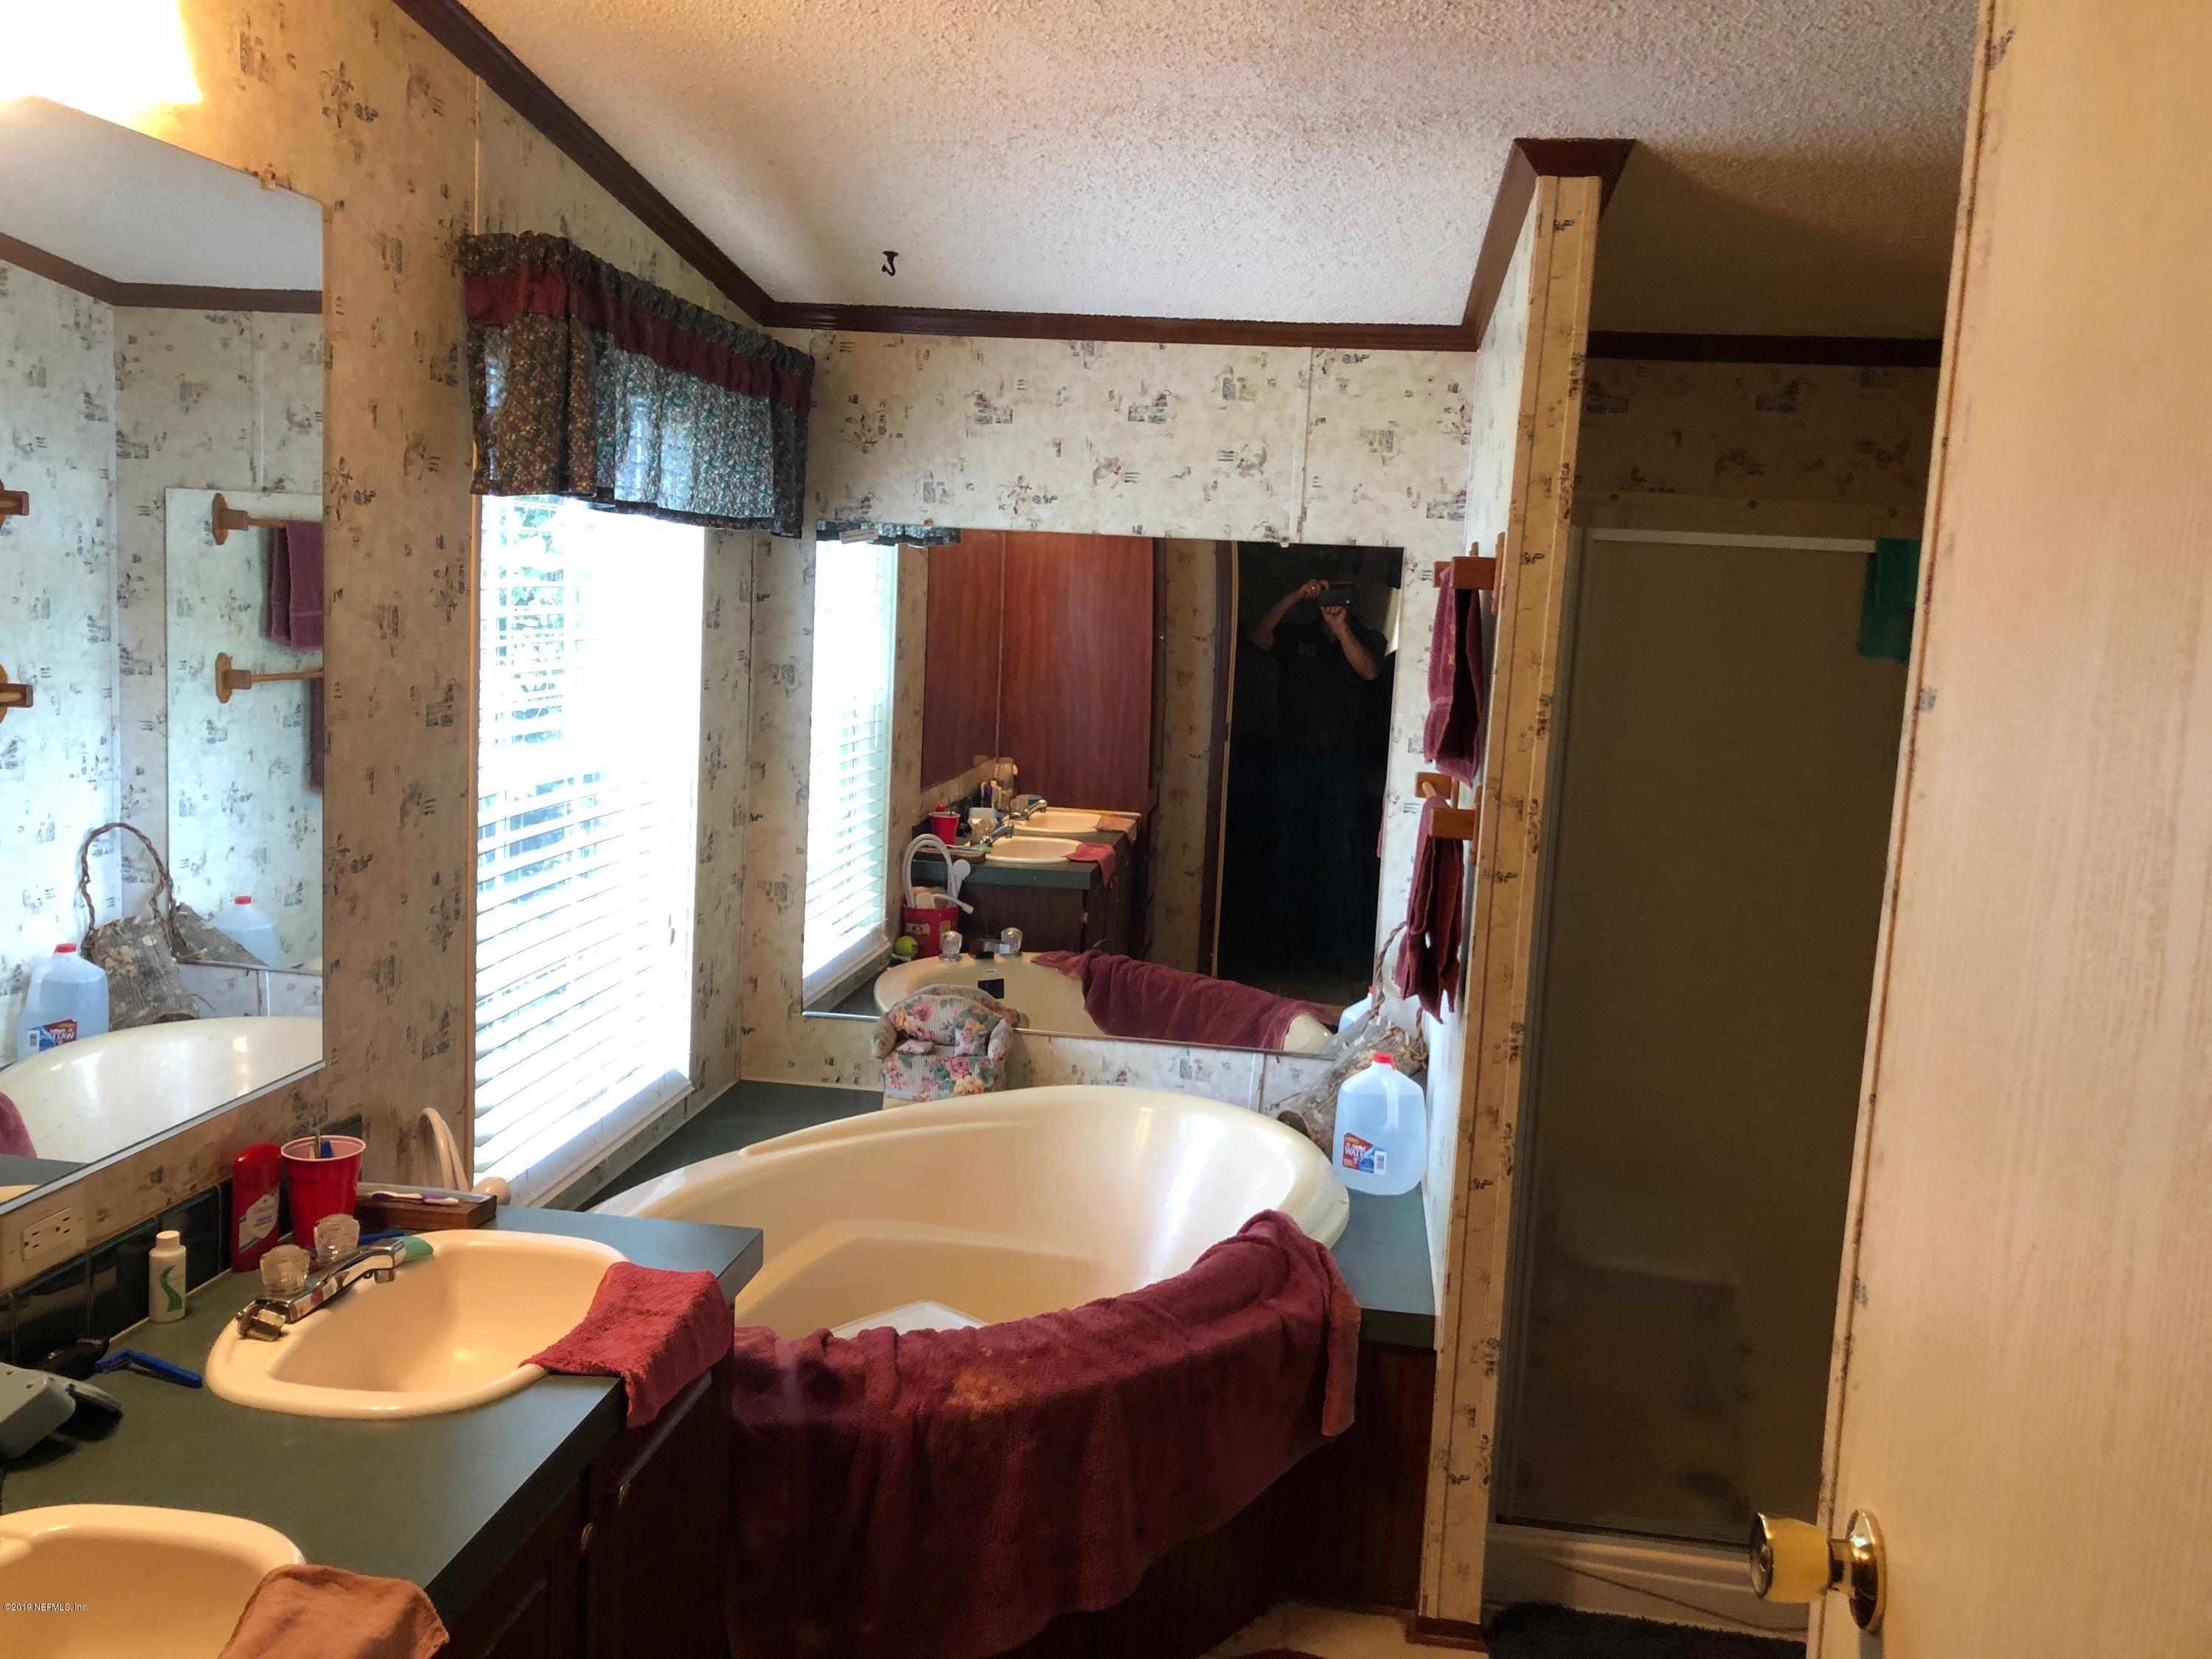 17870 LIL DIXIE, SANDERSON, FLORIDA 32087, 2 Bedrooms Bedrooms, ,2 BathroomsBathrooms,Residential,For sale,LIL DIXIE,1007059